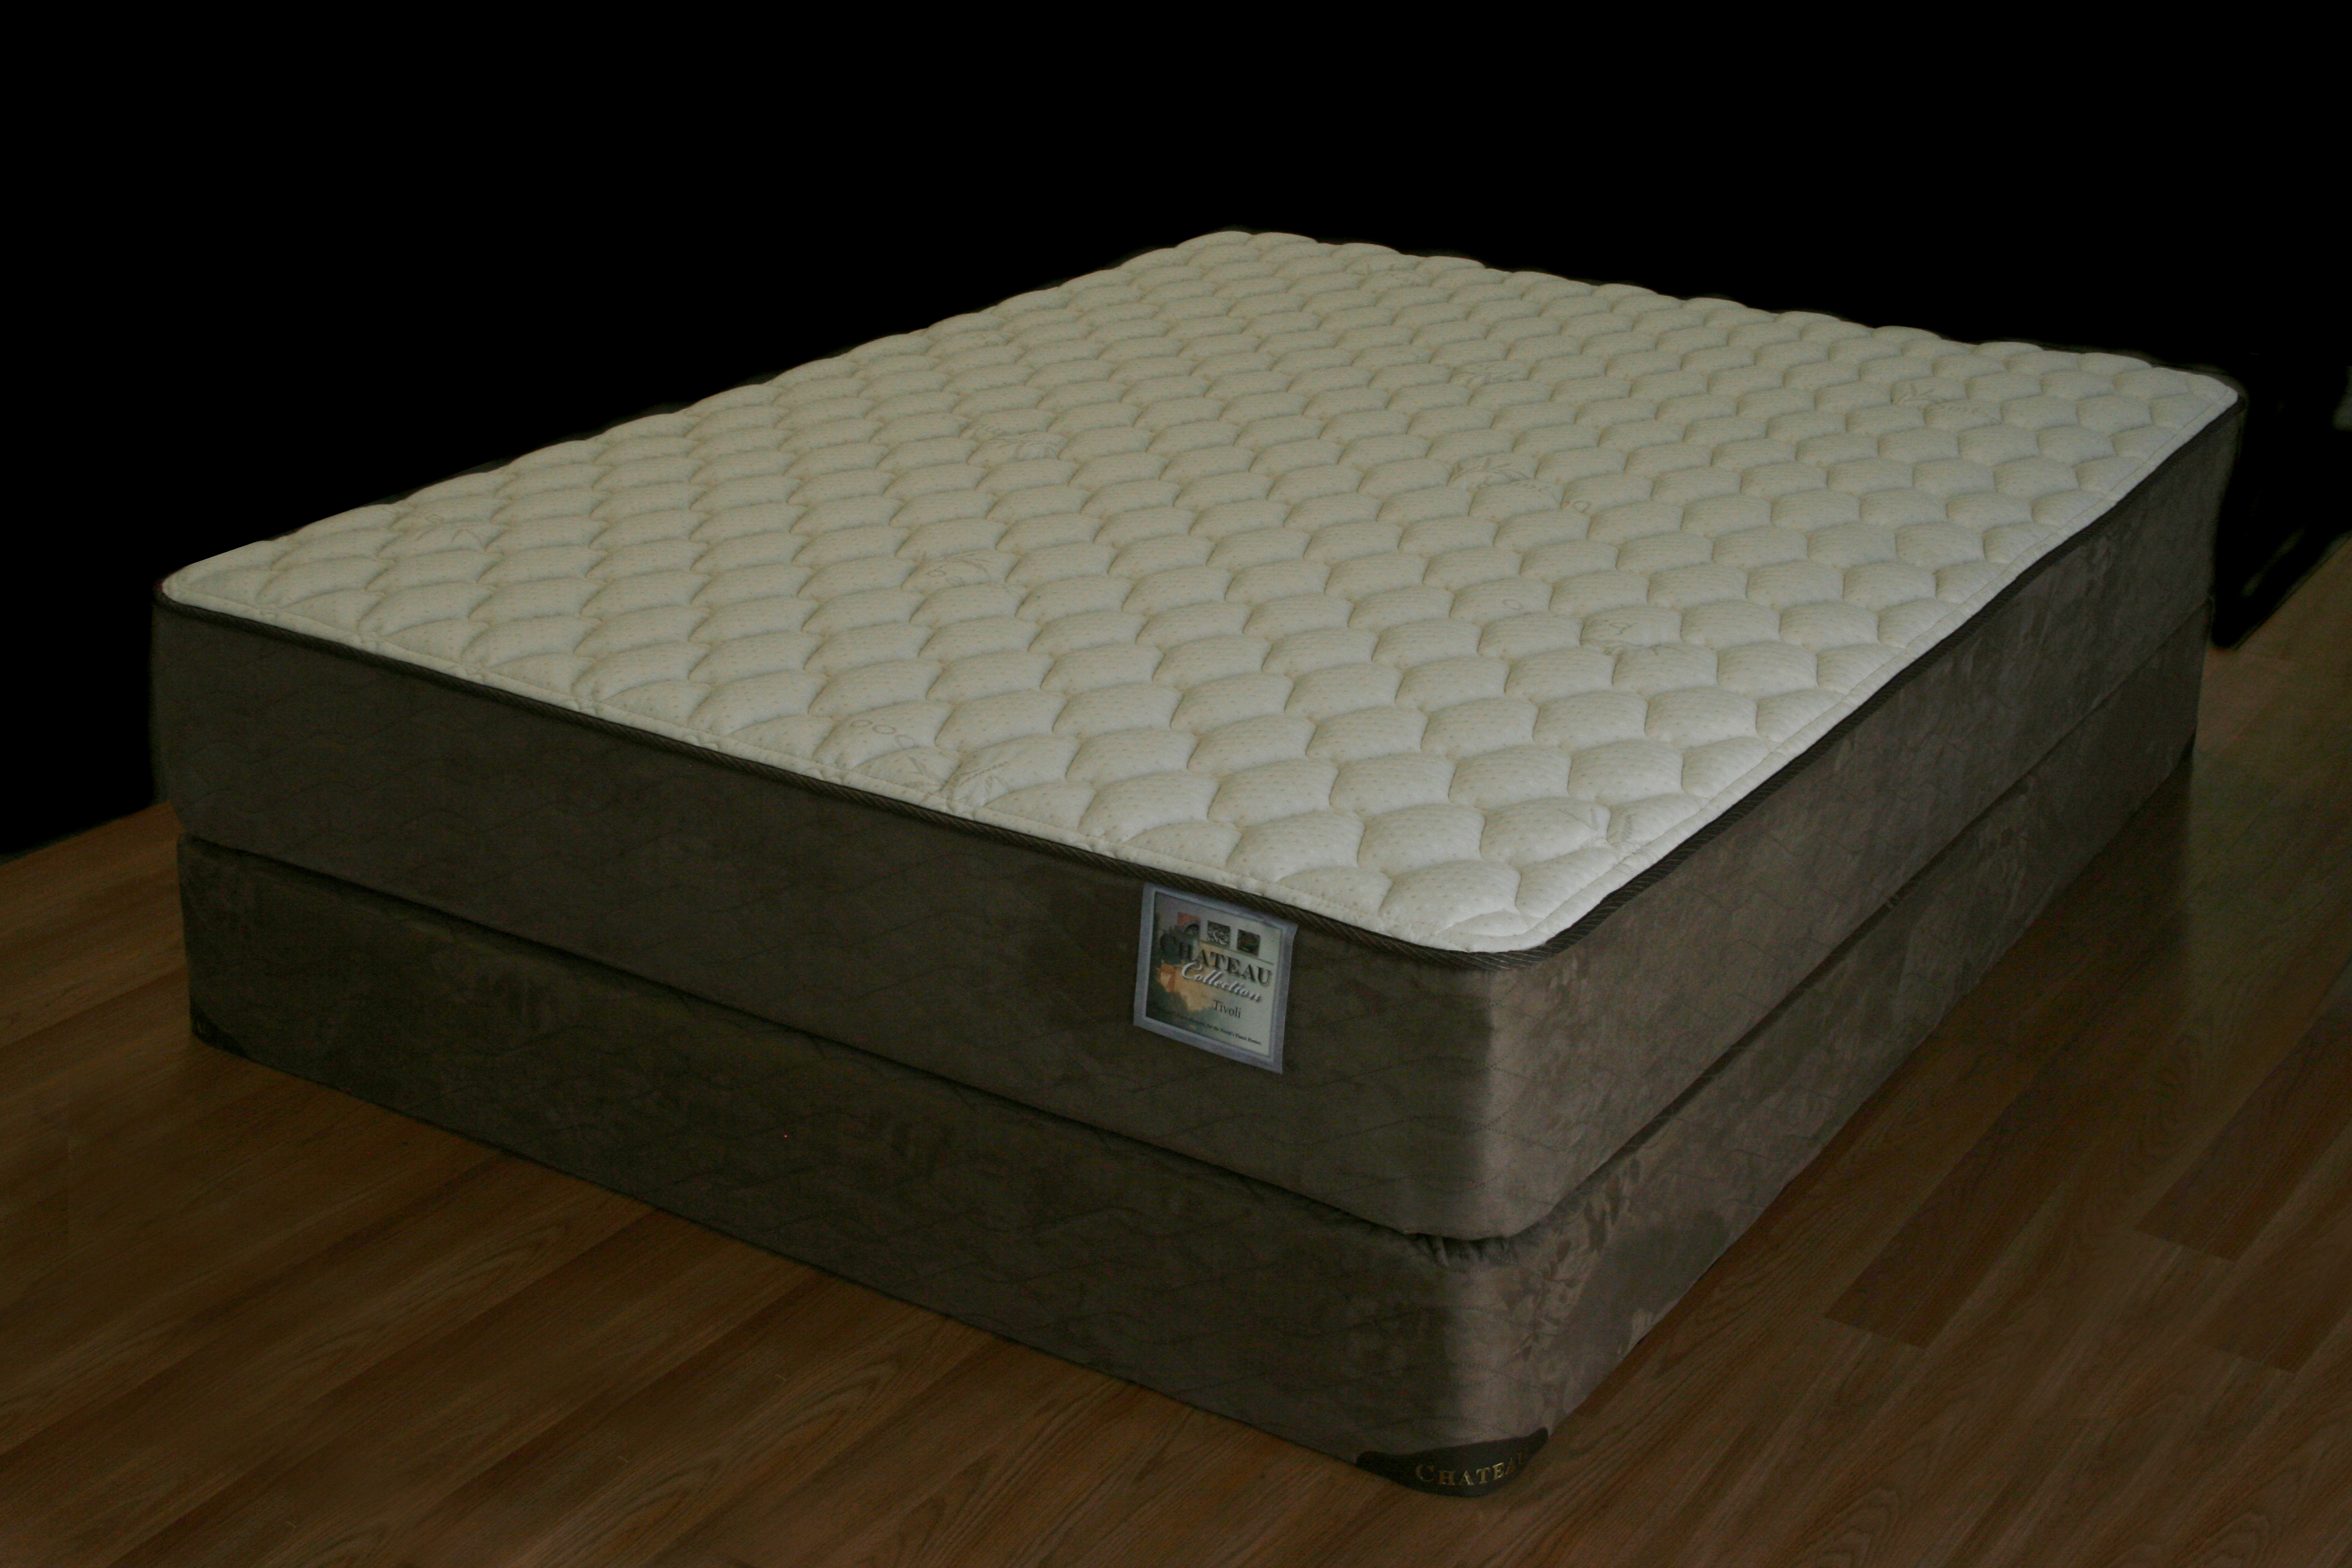 Tivoli Memory Foam Firm 805 Mattresses